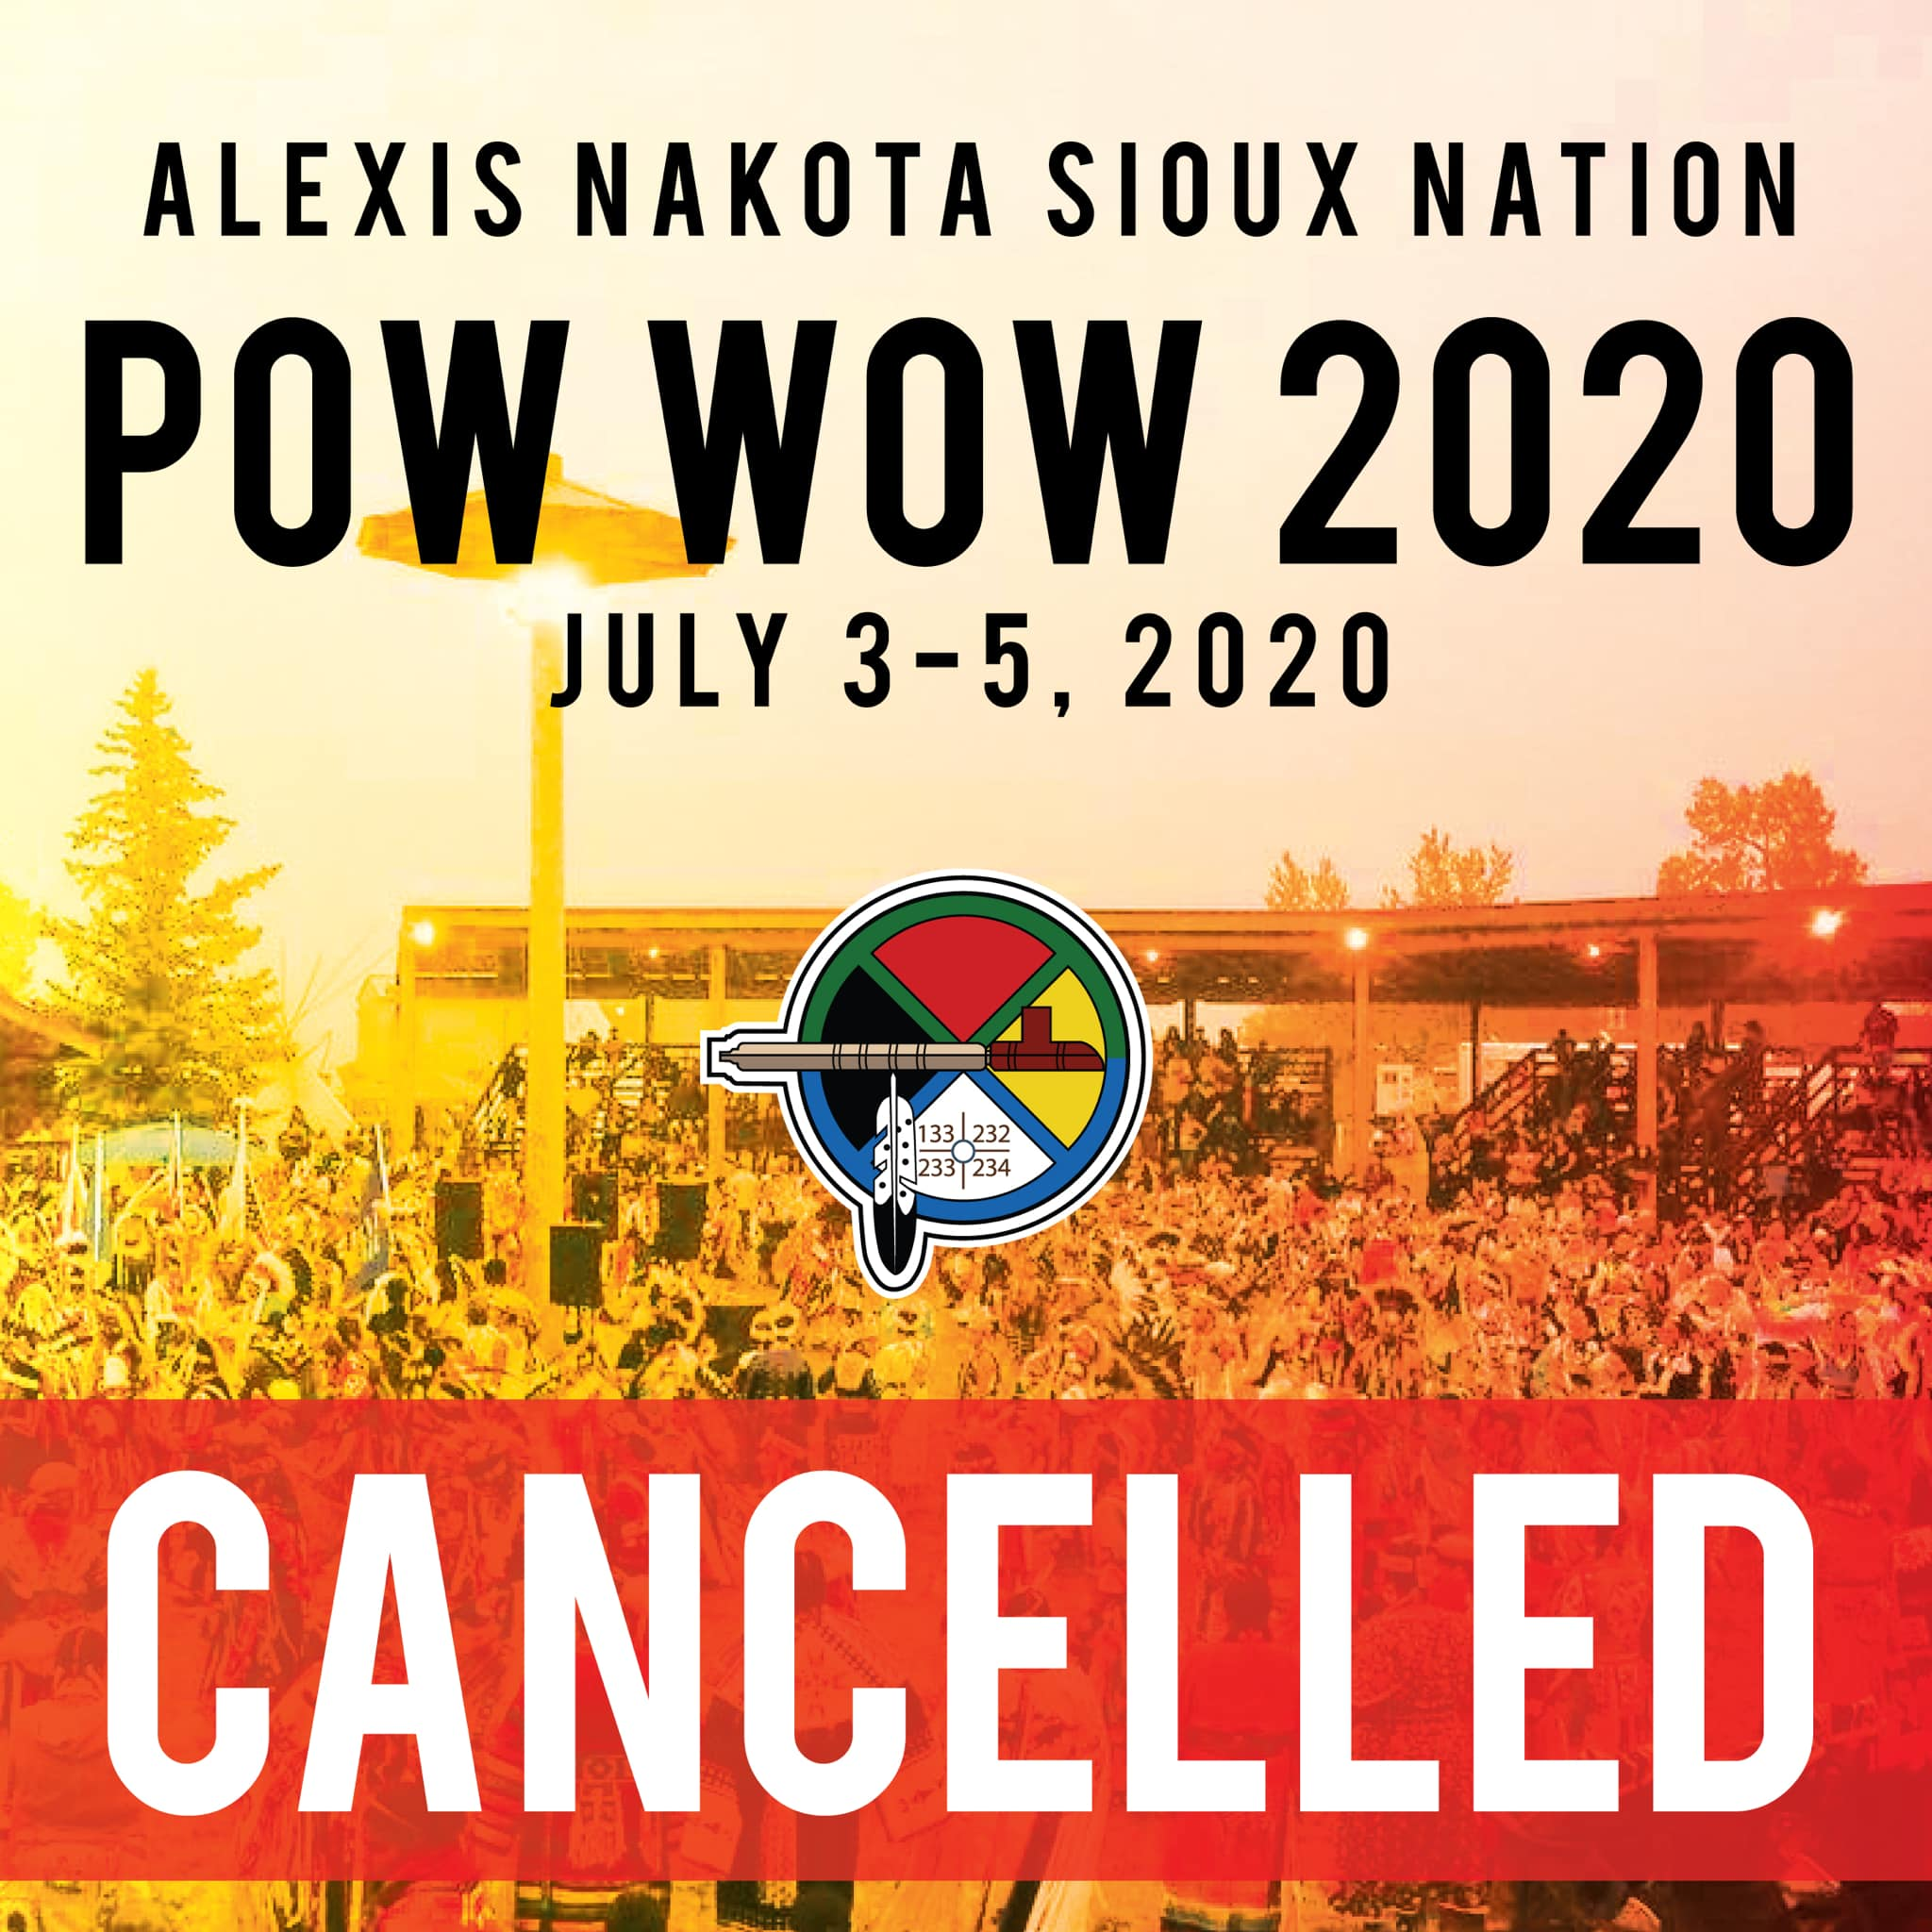 2020 Powwow 2020 is cancelled